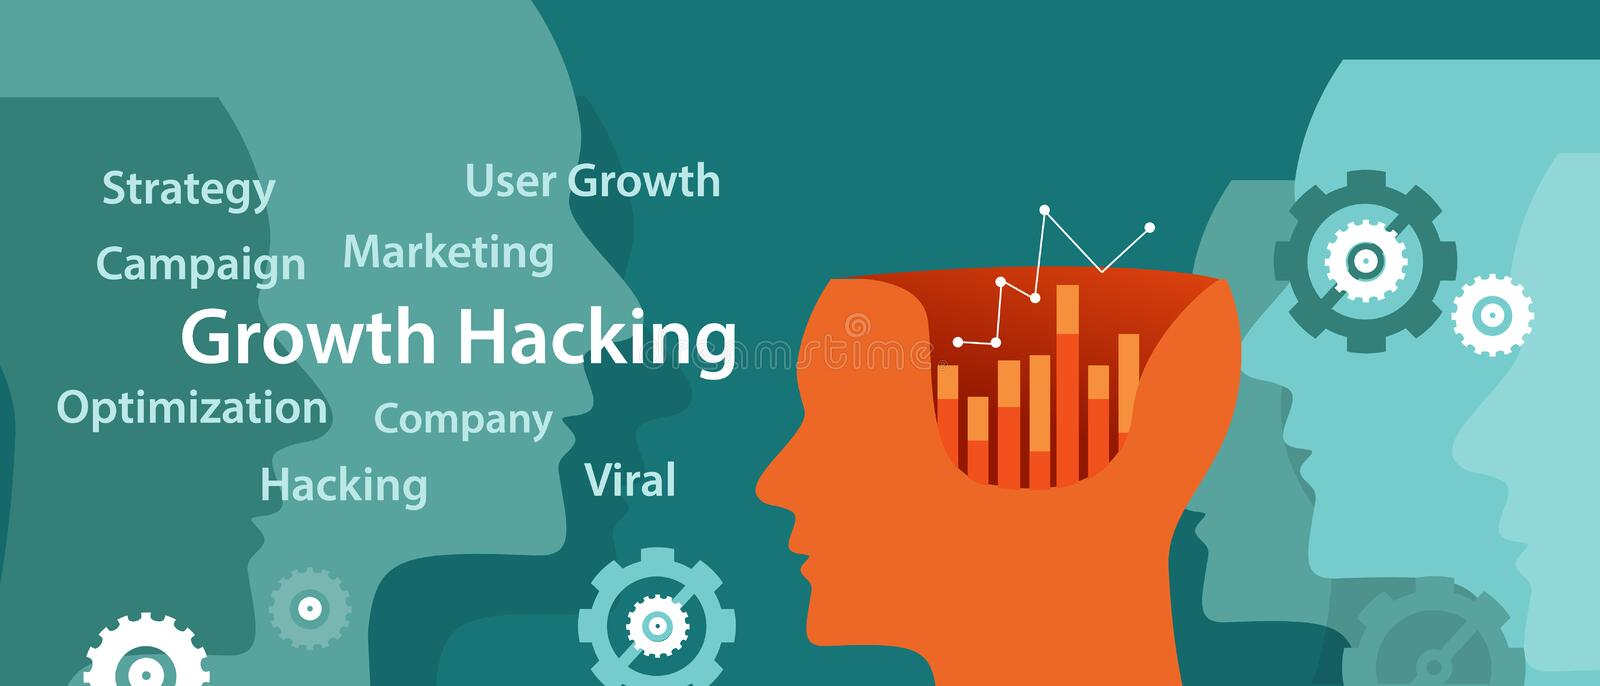 Growth hacking ways how business technology company strategy to improve user and revenue number vector illustration